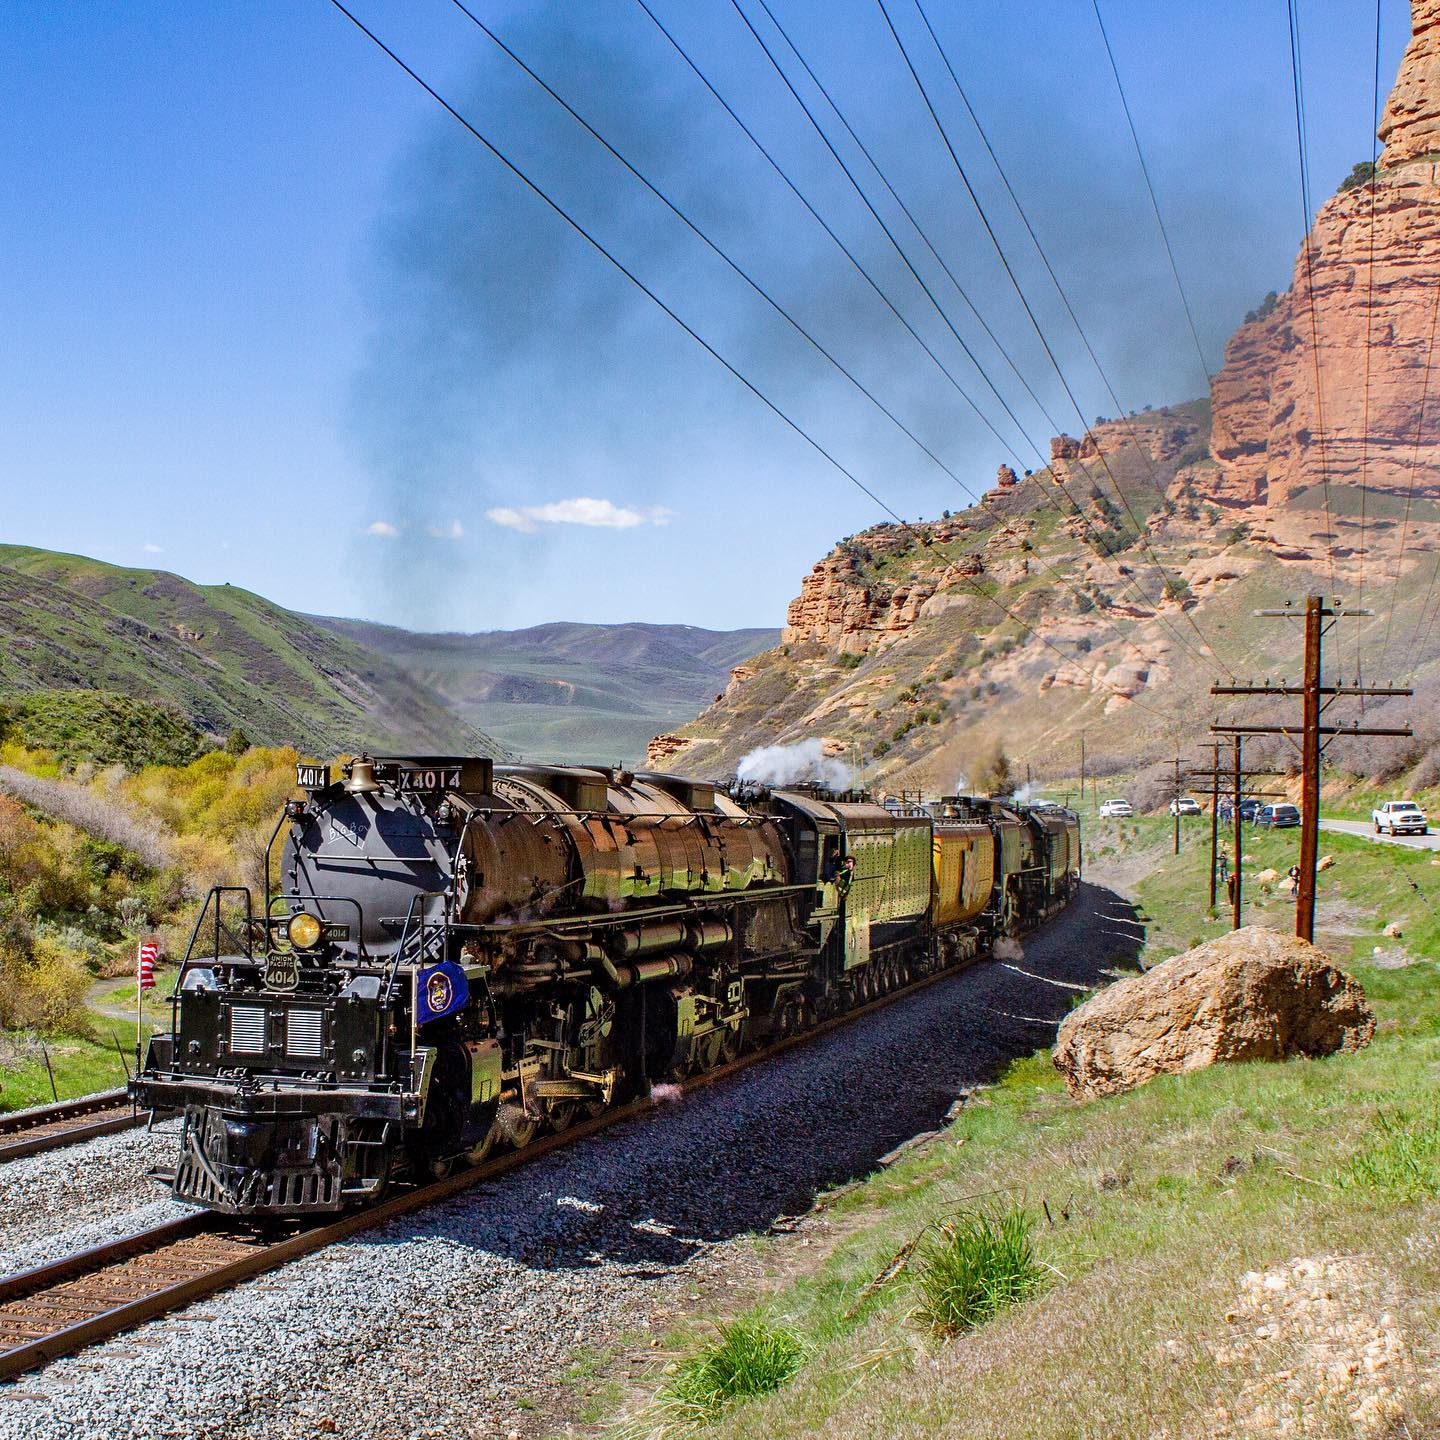 4014 and 844 in Echo Canyon, May 12, 2019. Maxwell Hamberger photo